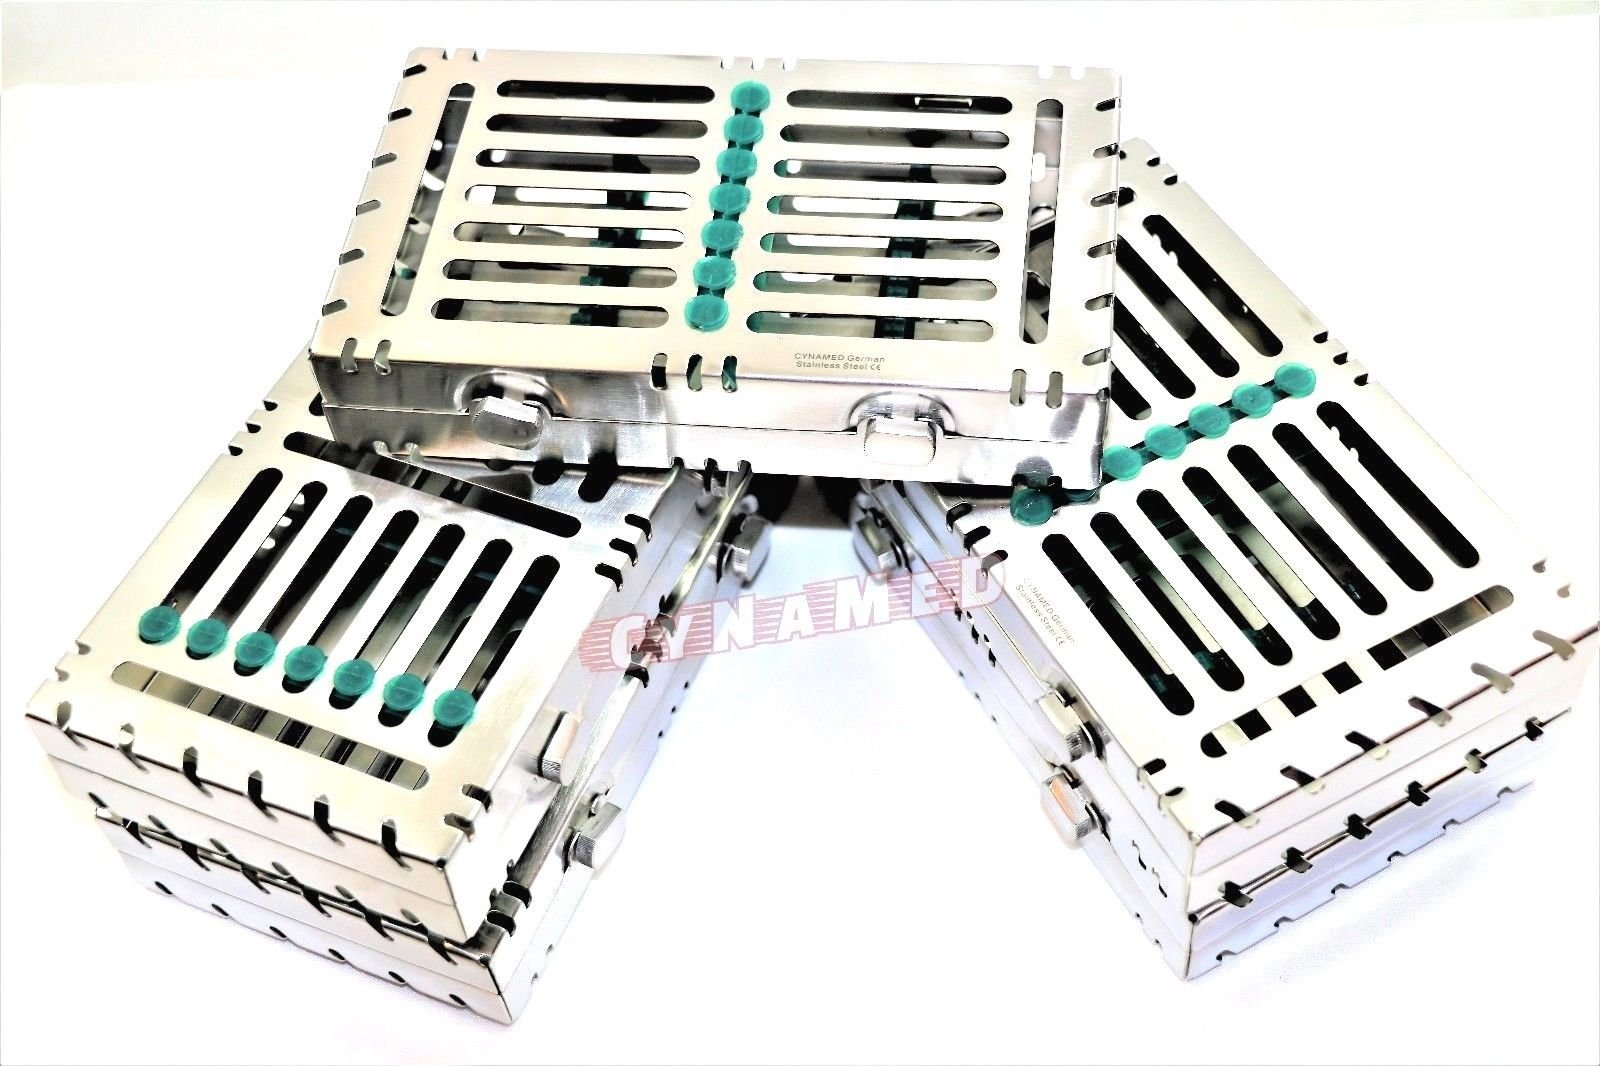 5 German Dental Autoclave Sterilization Cassette Rack Box Tray for 7 Instruments Green CYNAMED